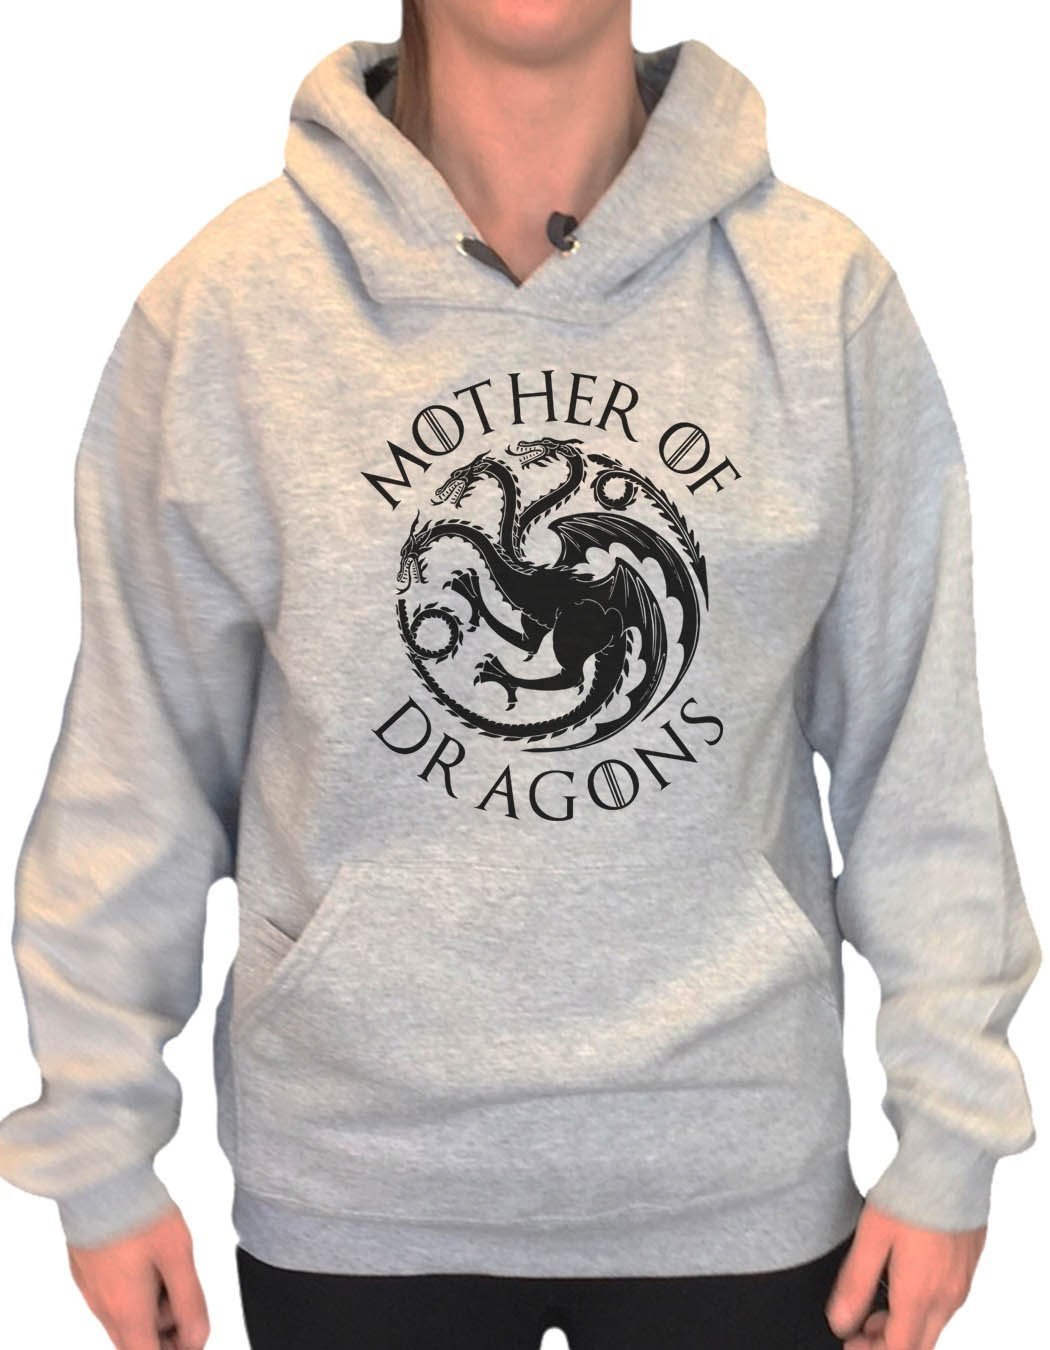 UNISEX HOODIE - Mother Of Dragons - FUNNY MENS AND WOMENS HOODED SWEATSHIRTS - BB15 Funny Shirt Small / Heather Grey